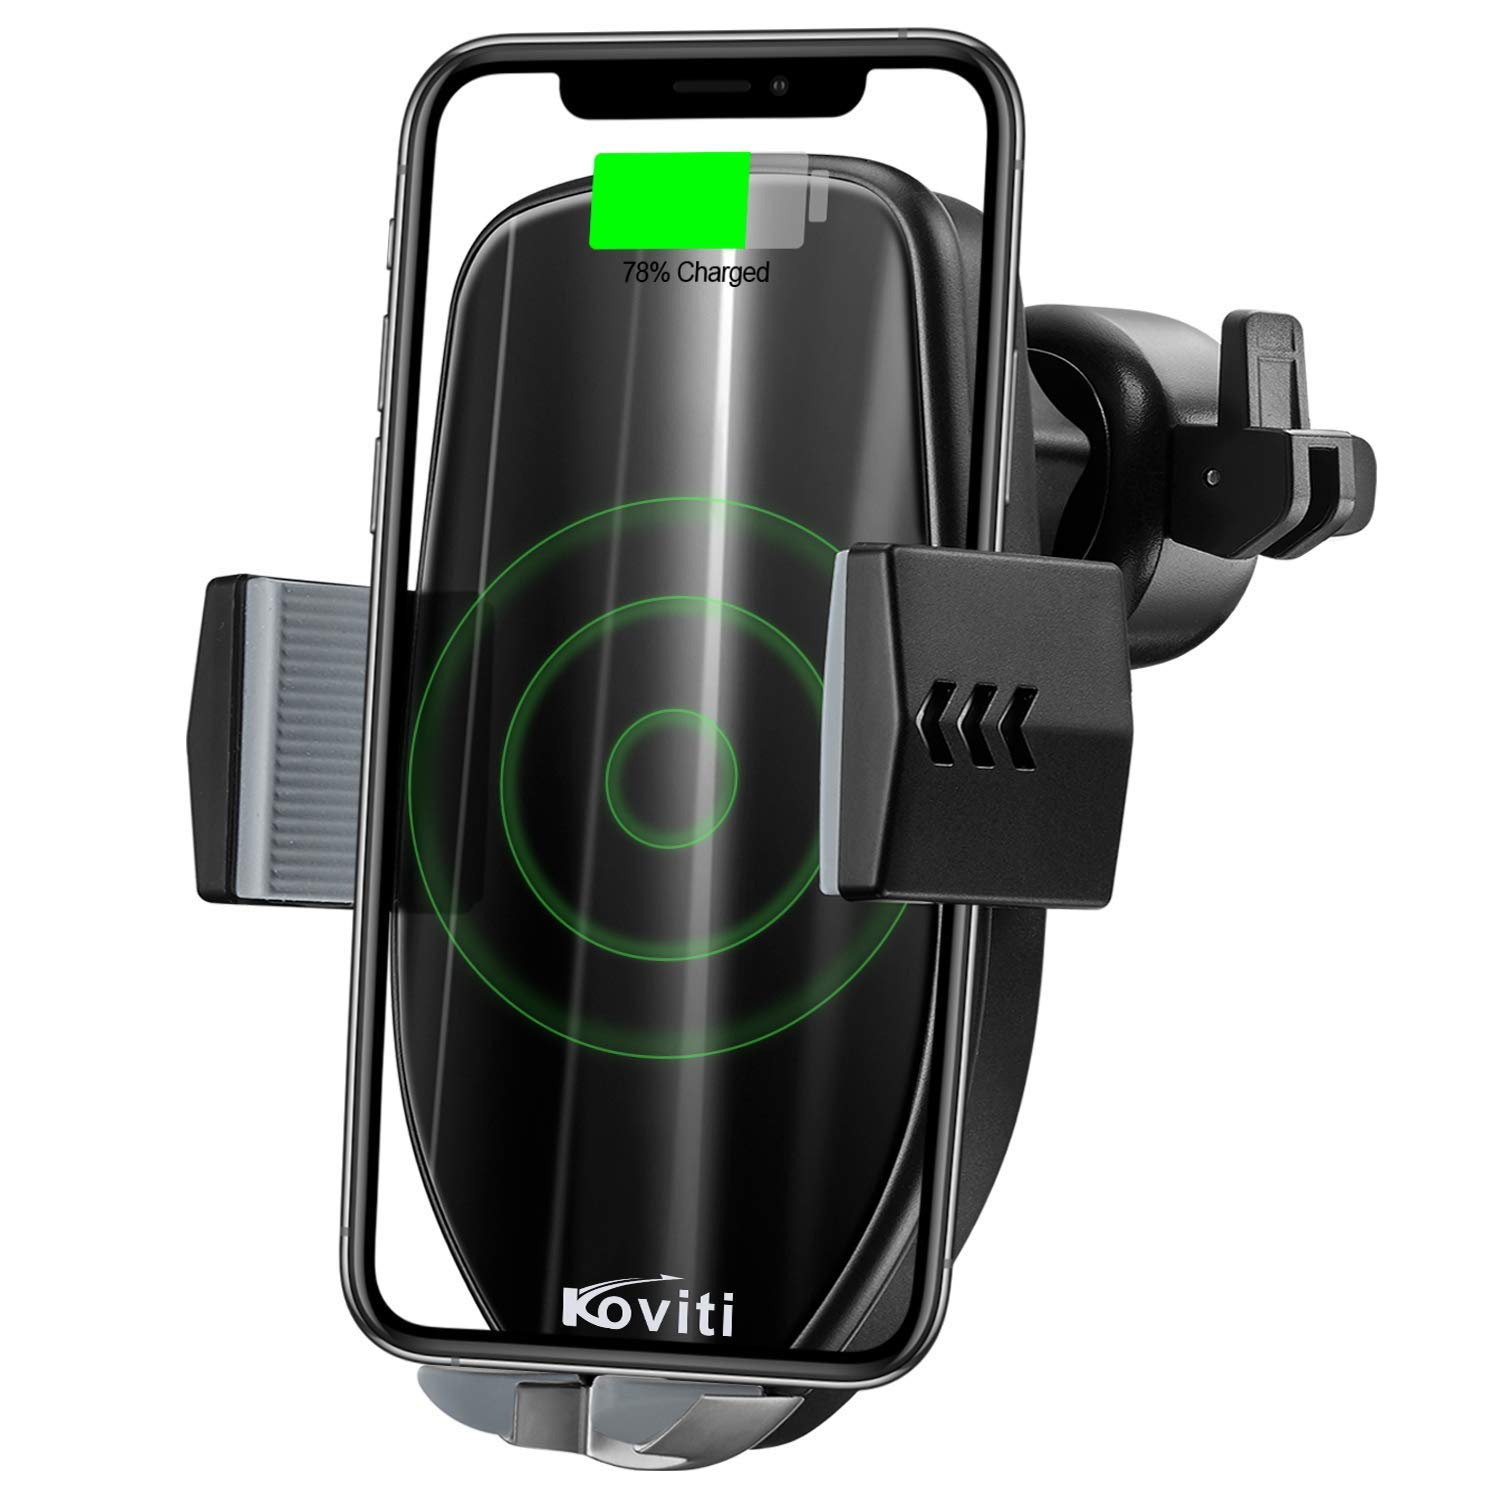 Wireless Car Charger, 2019 Newest 10W Qi Fast Charging Car Charger Mount Phone Holder Automatic Clamping,Compatible for iPhone XS MAX/XR/XS/X/8Plus/8,Samsung Galaxy S9/S8/S8 Plus/S7/S6 Edge Plus/Note9 by Koviti